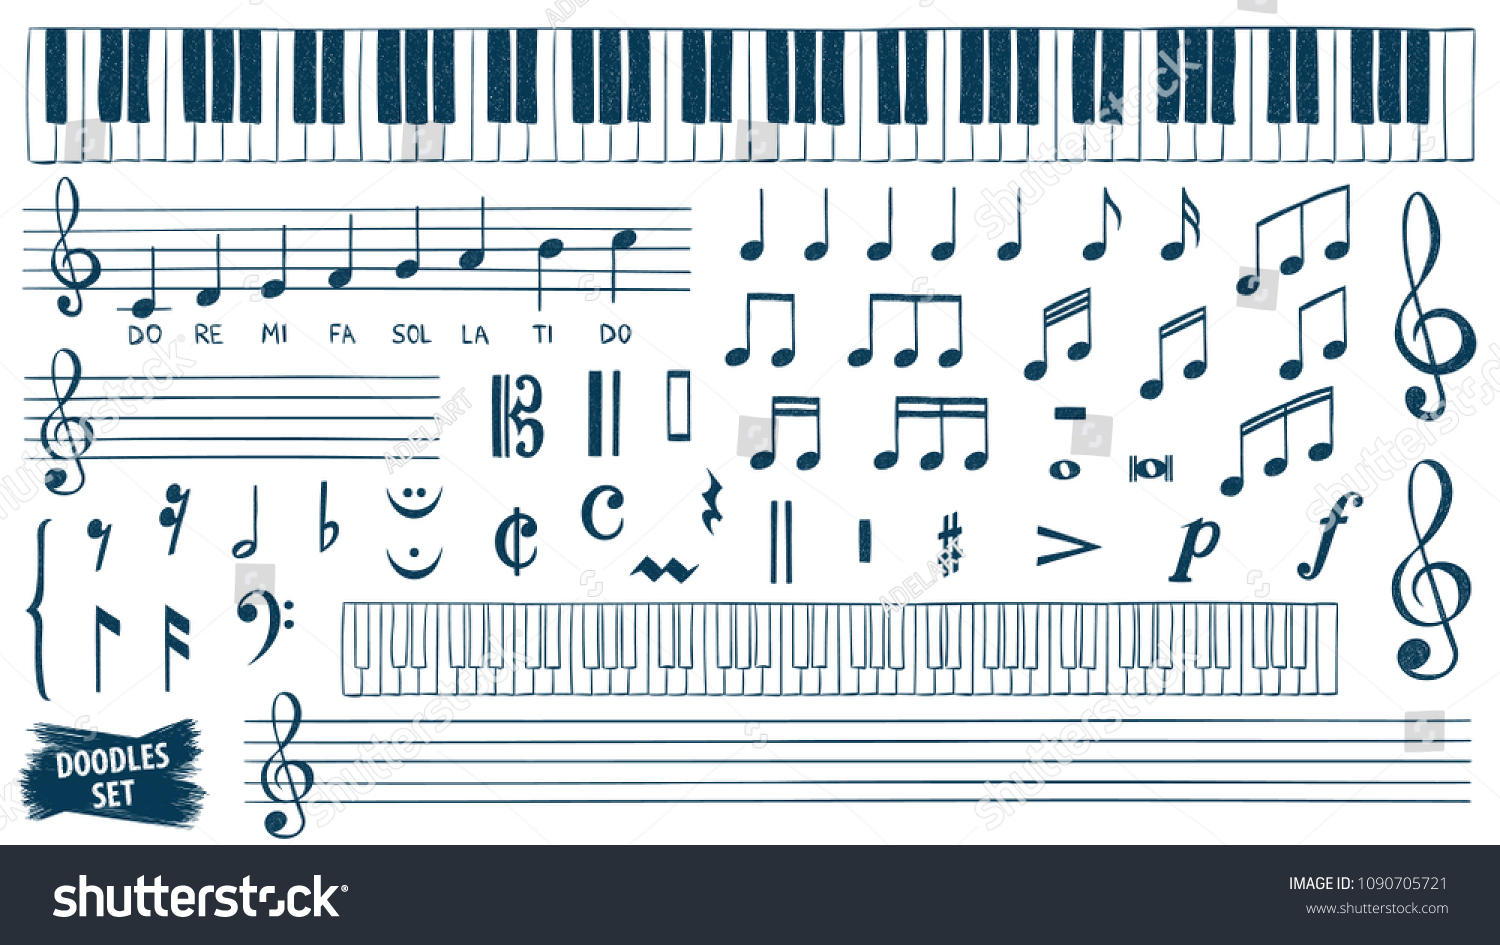 Music Notes Doodles Set Piano Keys Stock Vector Royalty Free Wallpaper Electric Guitar Plan Diagram Drawing Wallpapers Sketch Treble Clef Hand Drawn Detailed